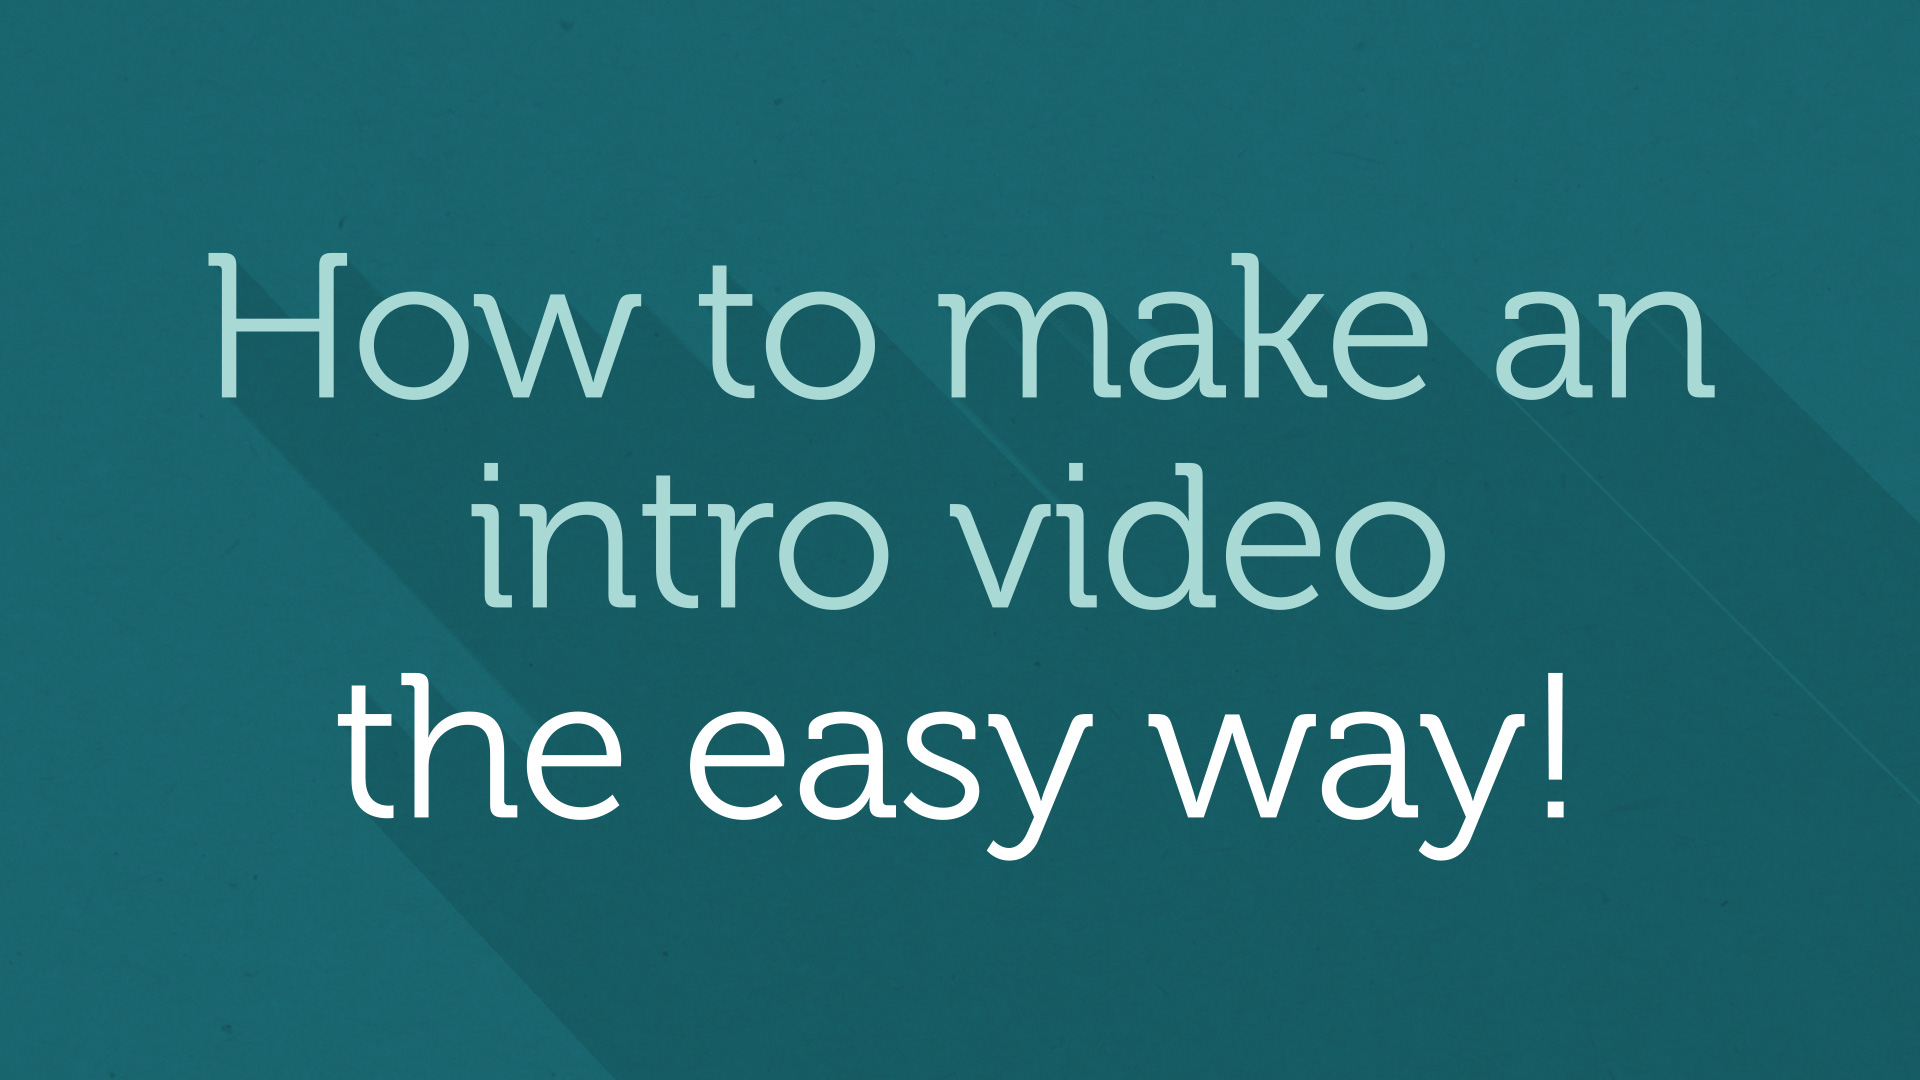 How_To_Make_An_Intro_Video_The_Easy_Way